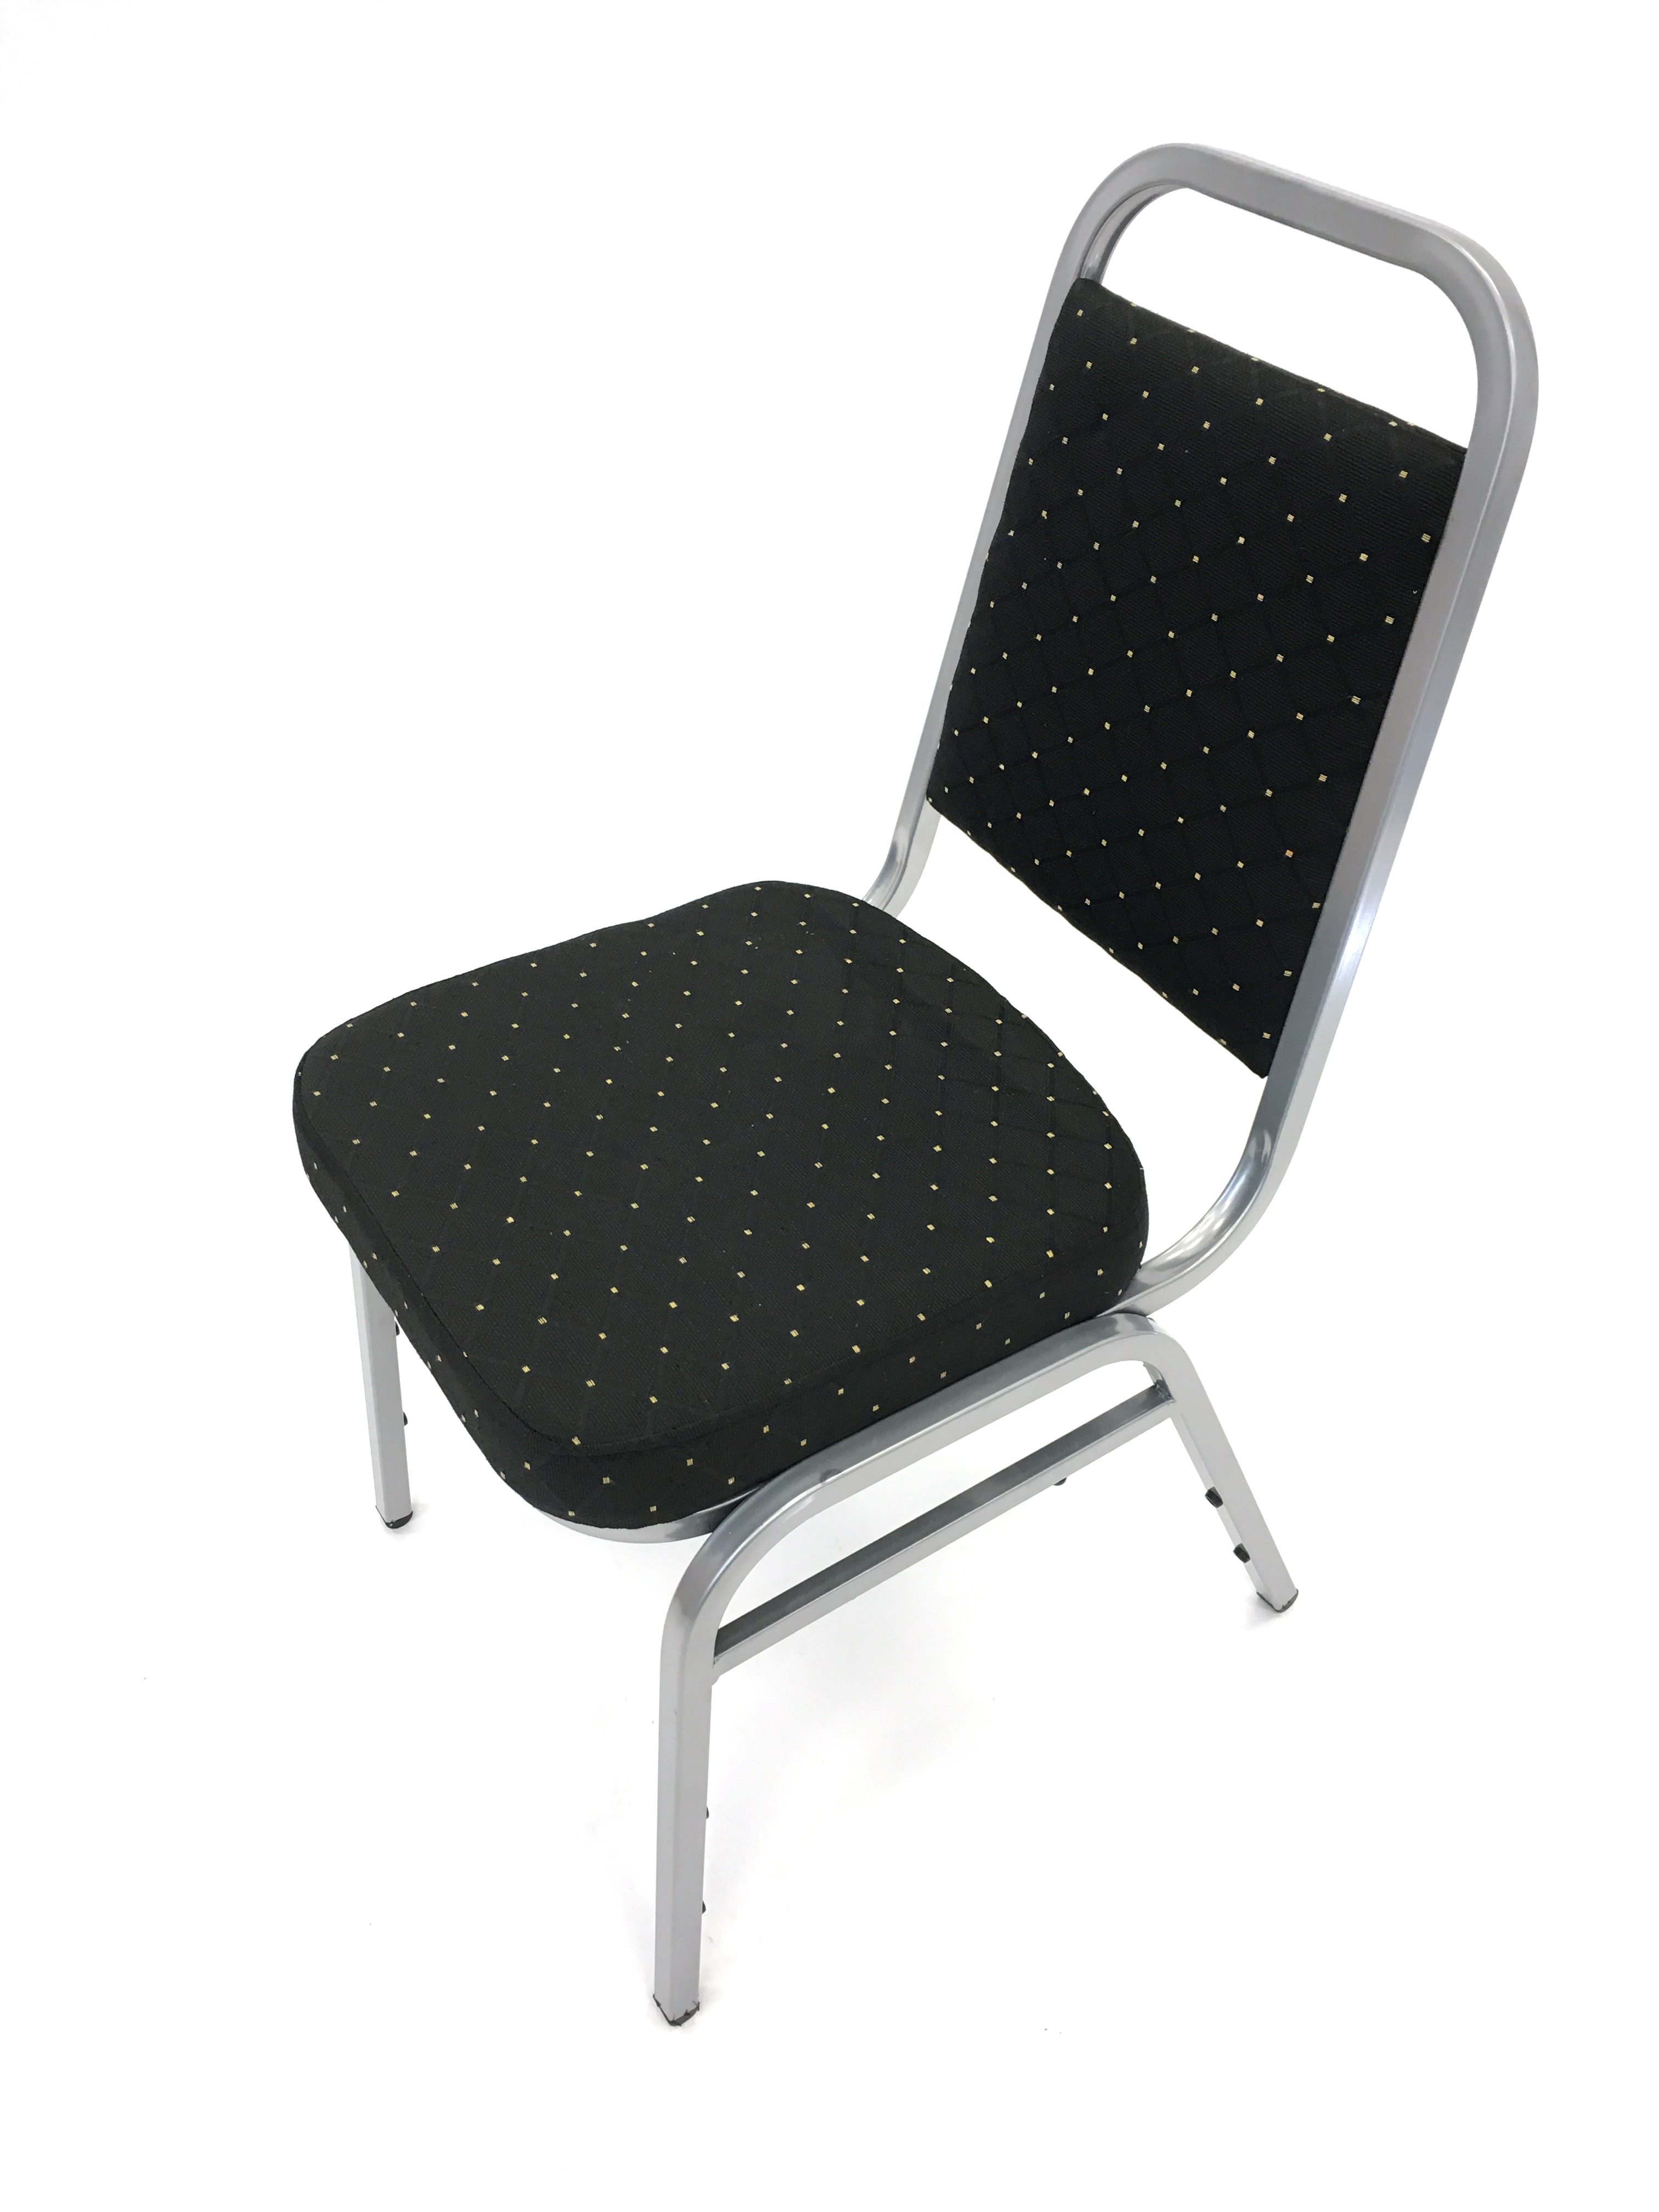 Black silver banquet conference chair - BE Event Hire